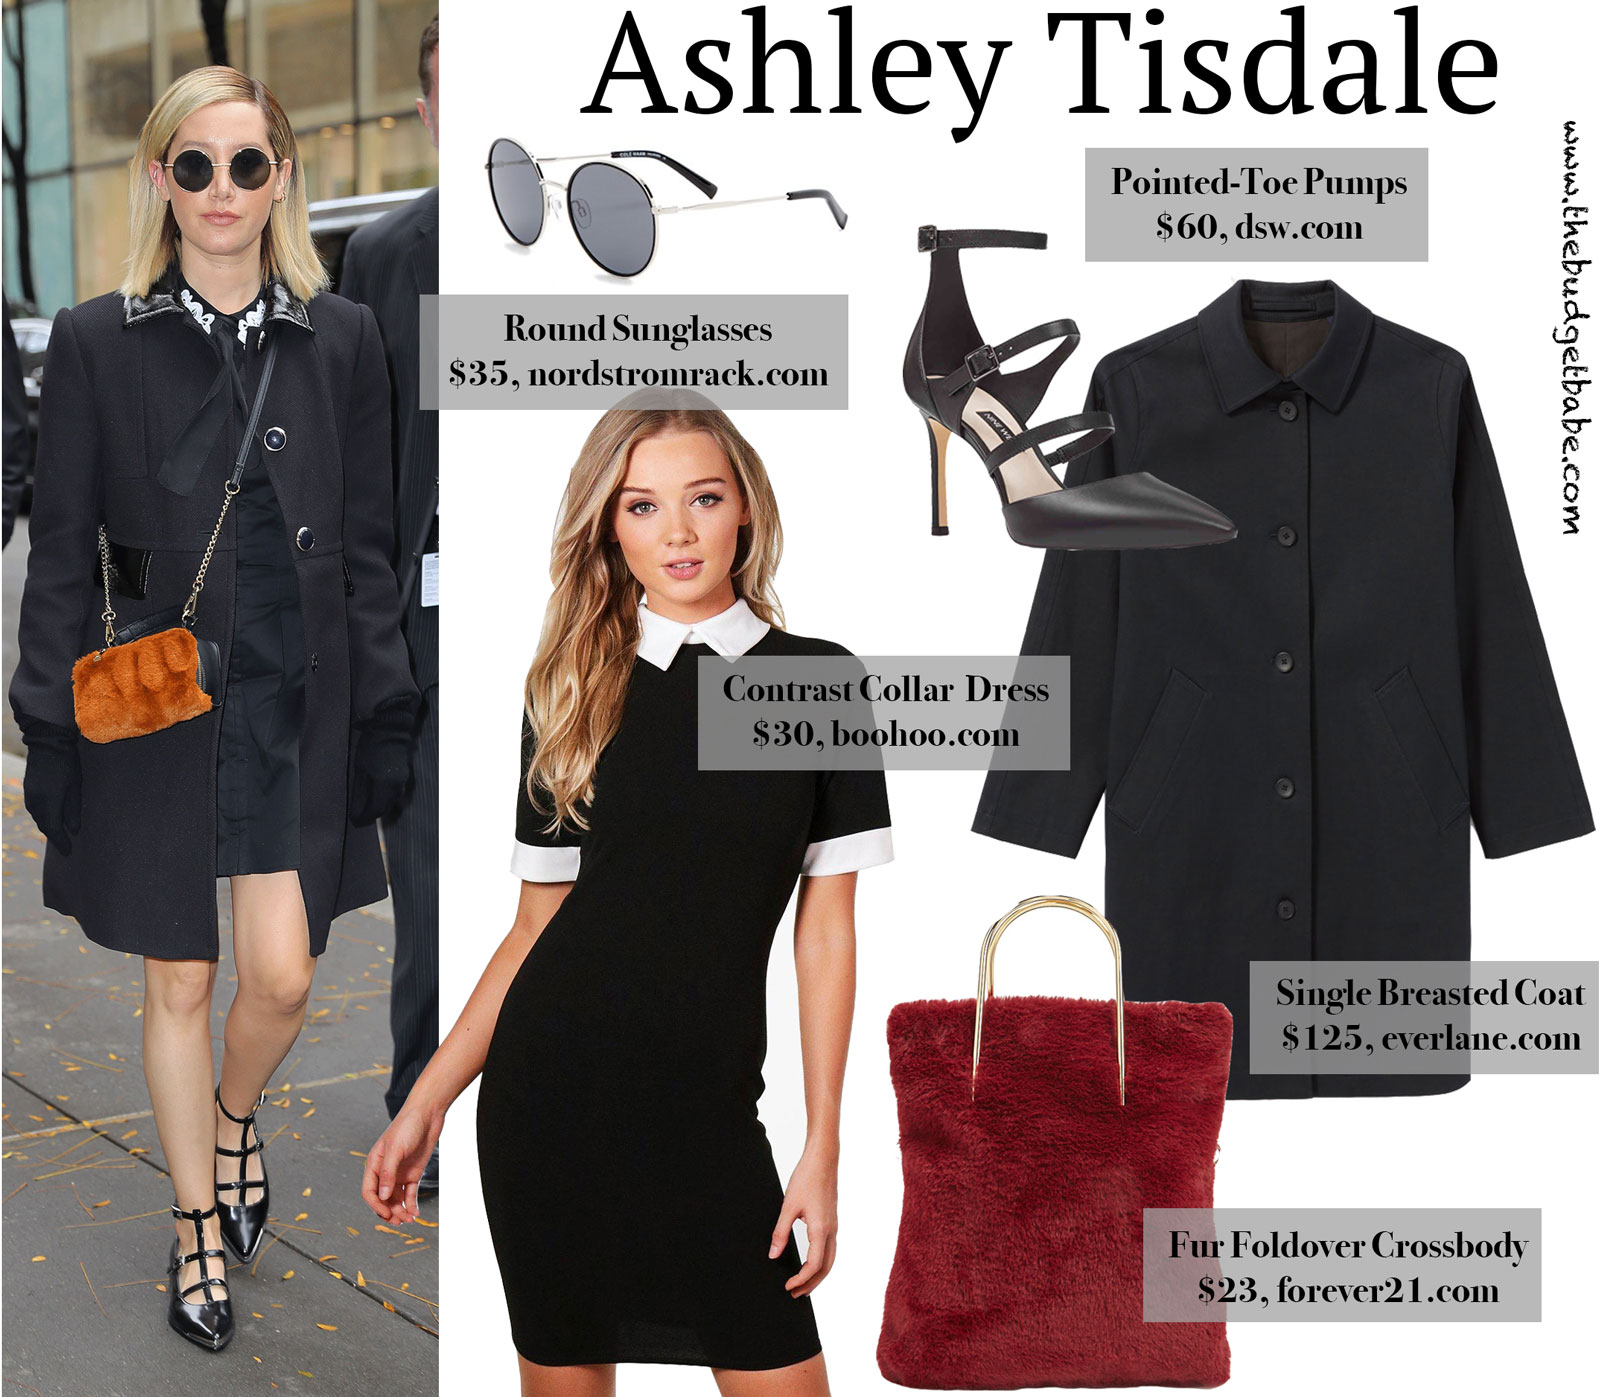 Ashley Tisdale Black Coat and Caged Heels Look for Less